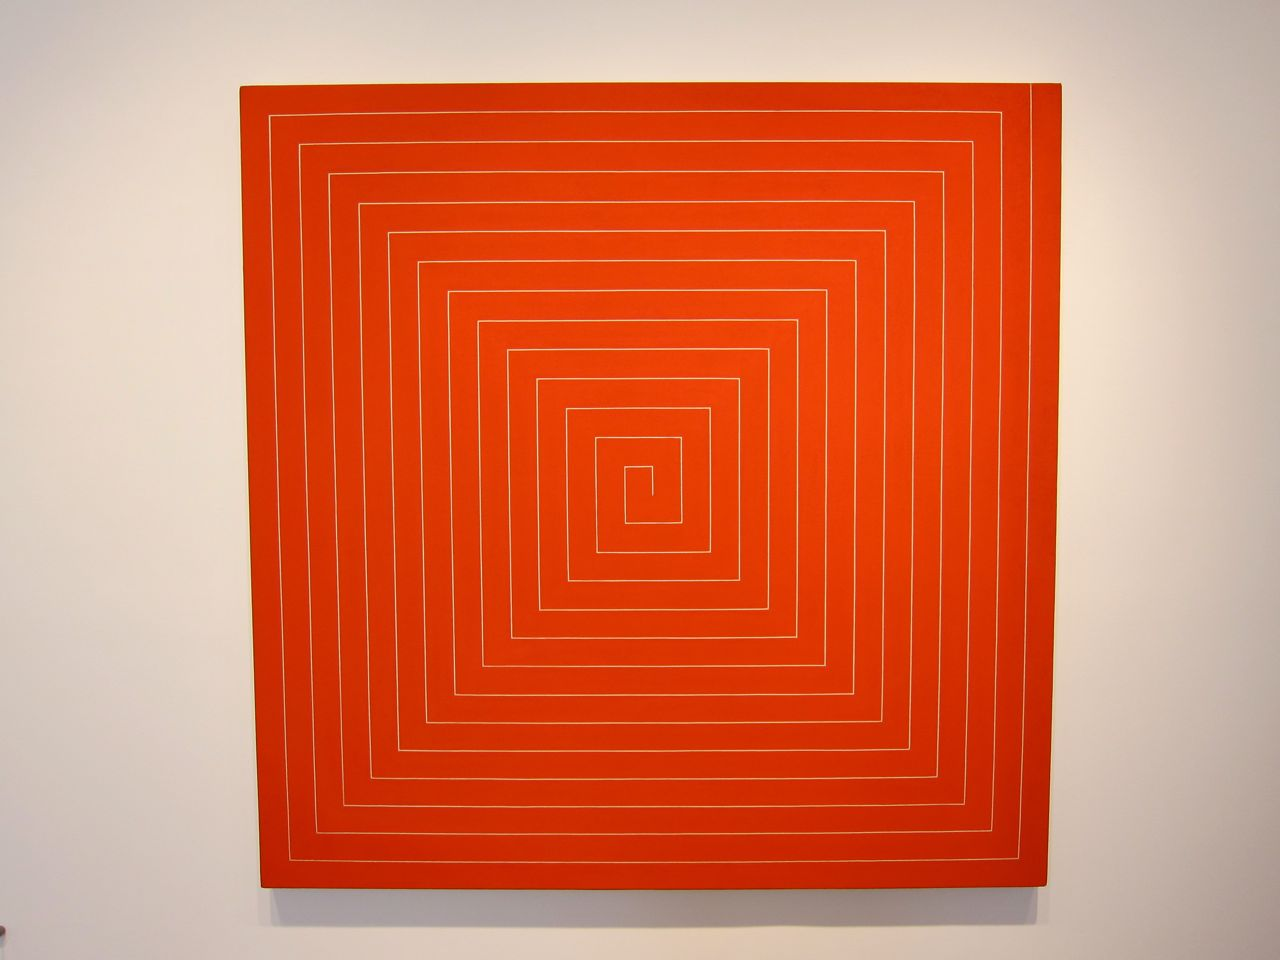 Frank Stella Paul Kasmin AM 04